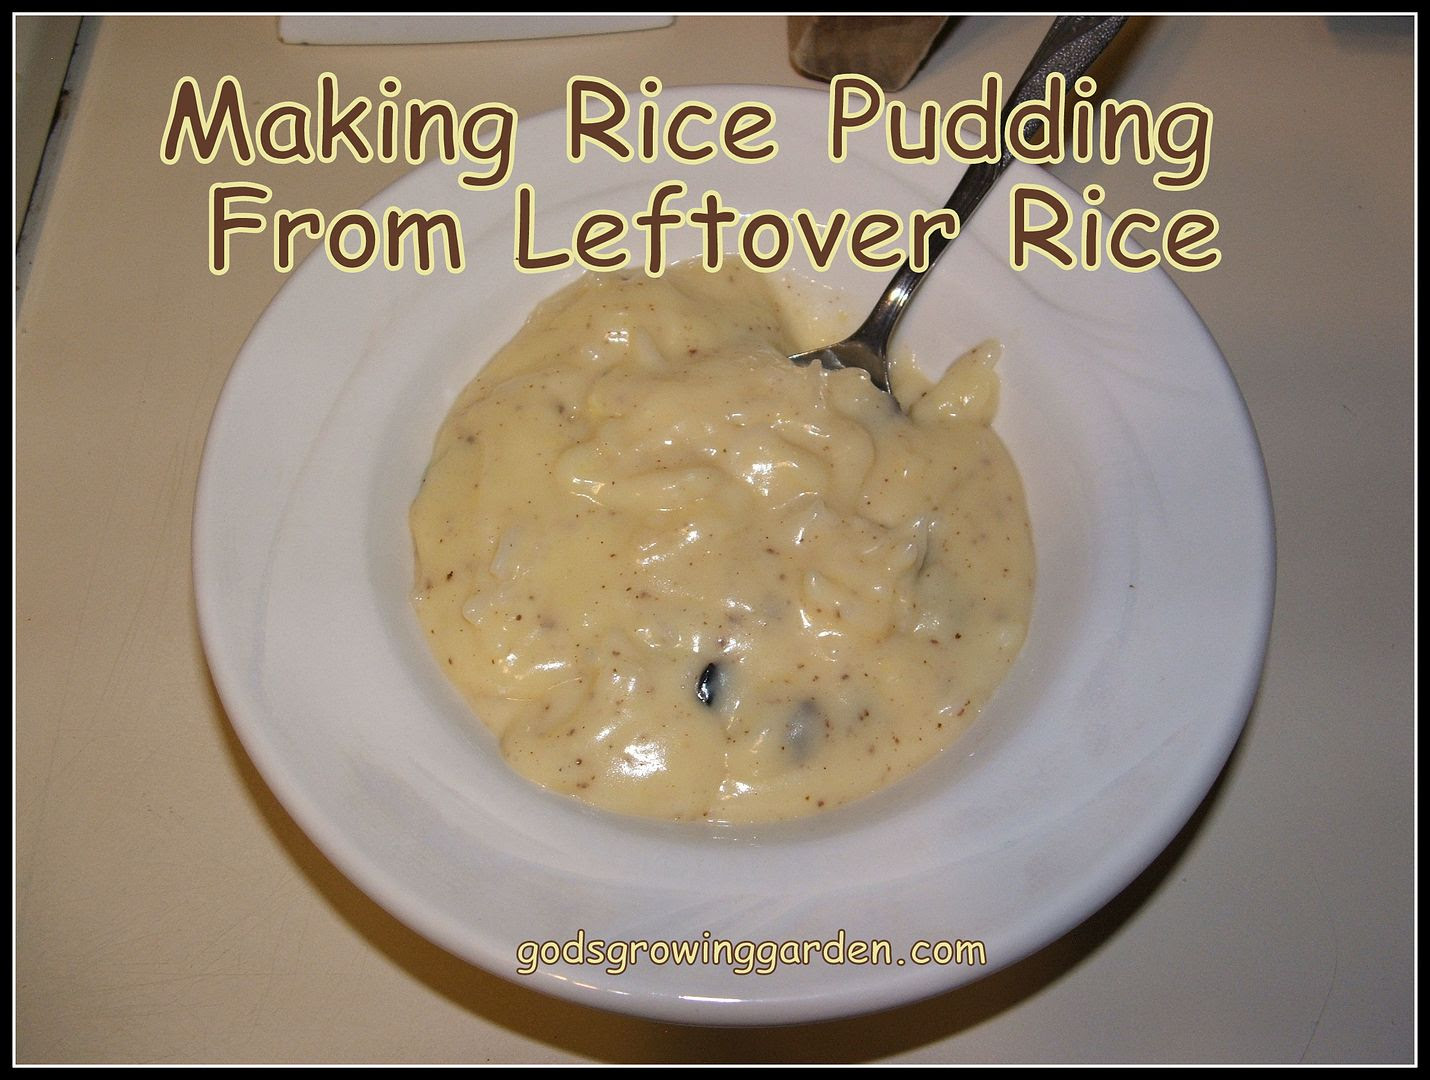 Rice Pudding by Angie Ouellette-Tower for godsgrowinggarden.com photo 005_zps8029b527.jpg